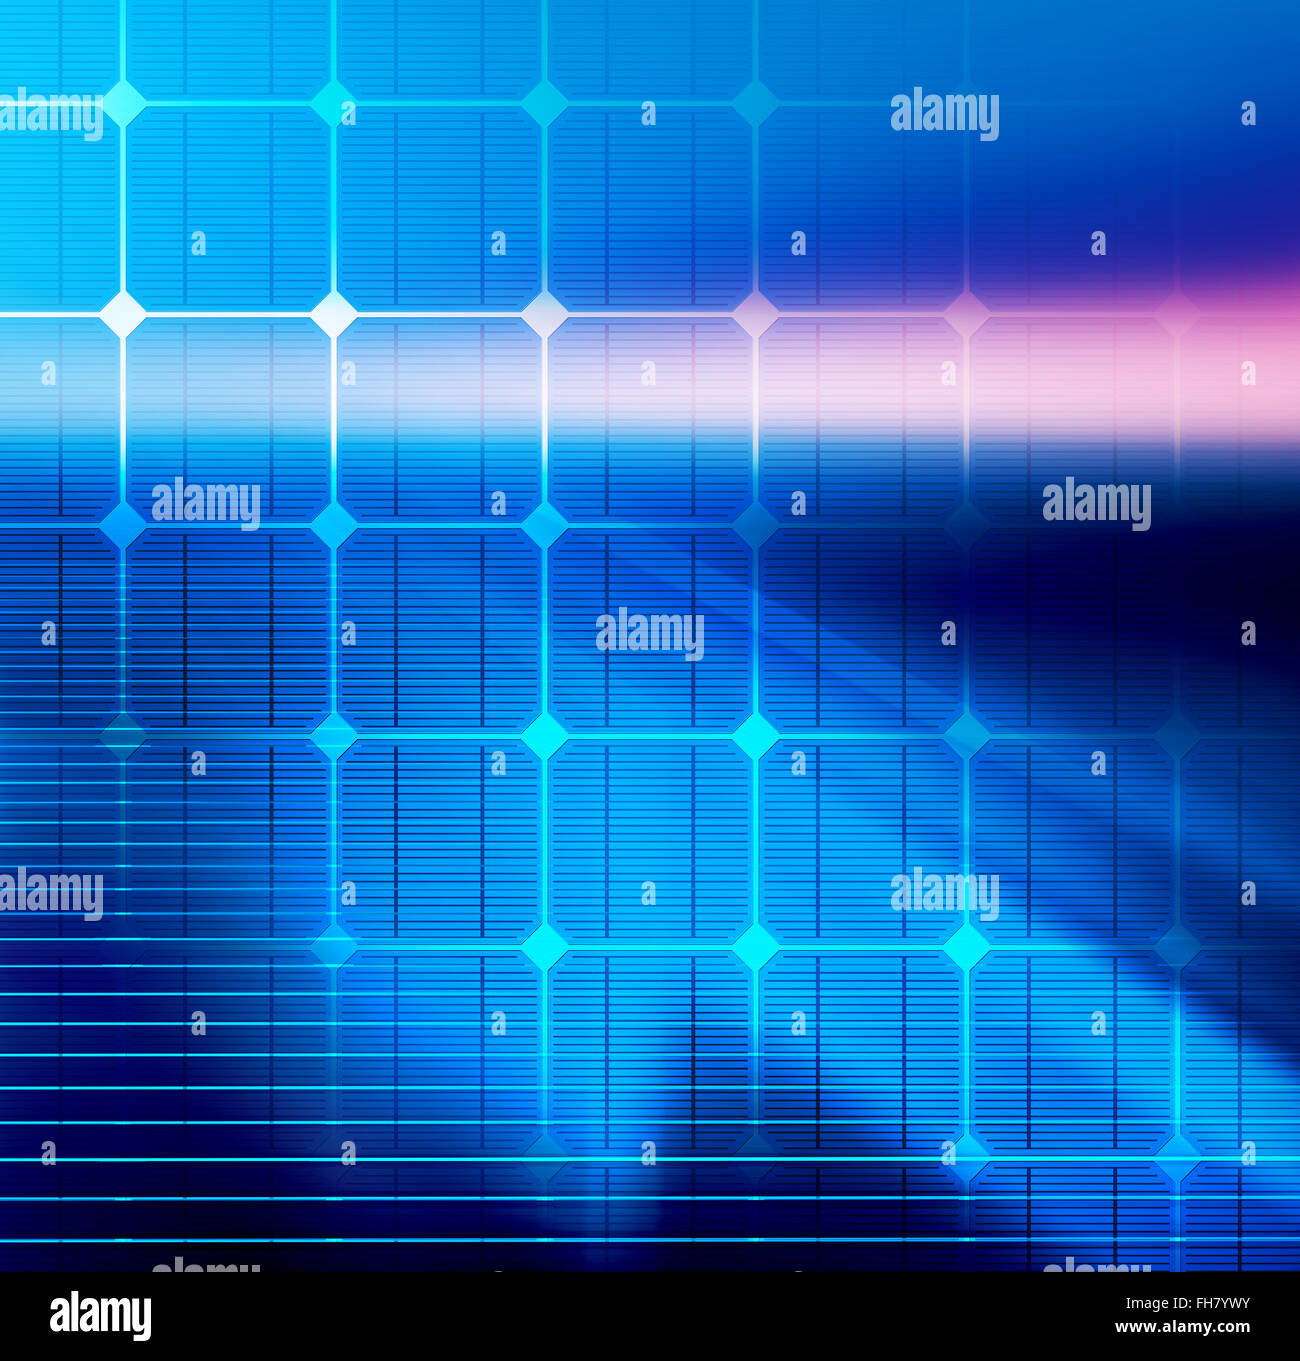 Technology background with transparent geometric shapes - Stock Image